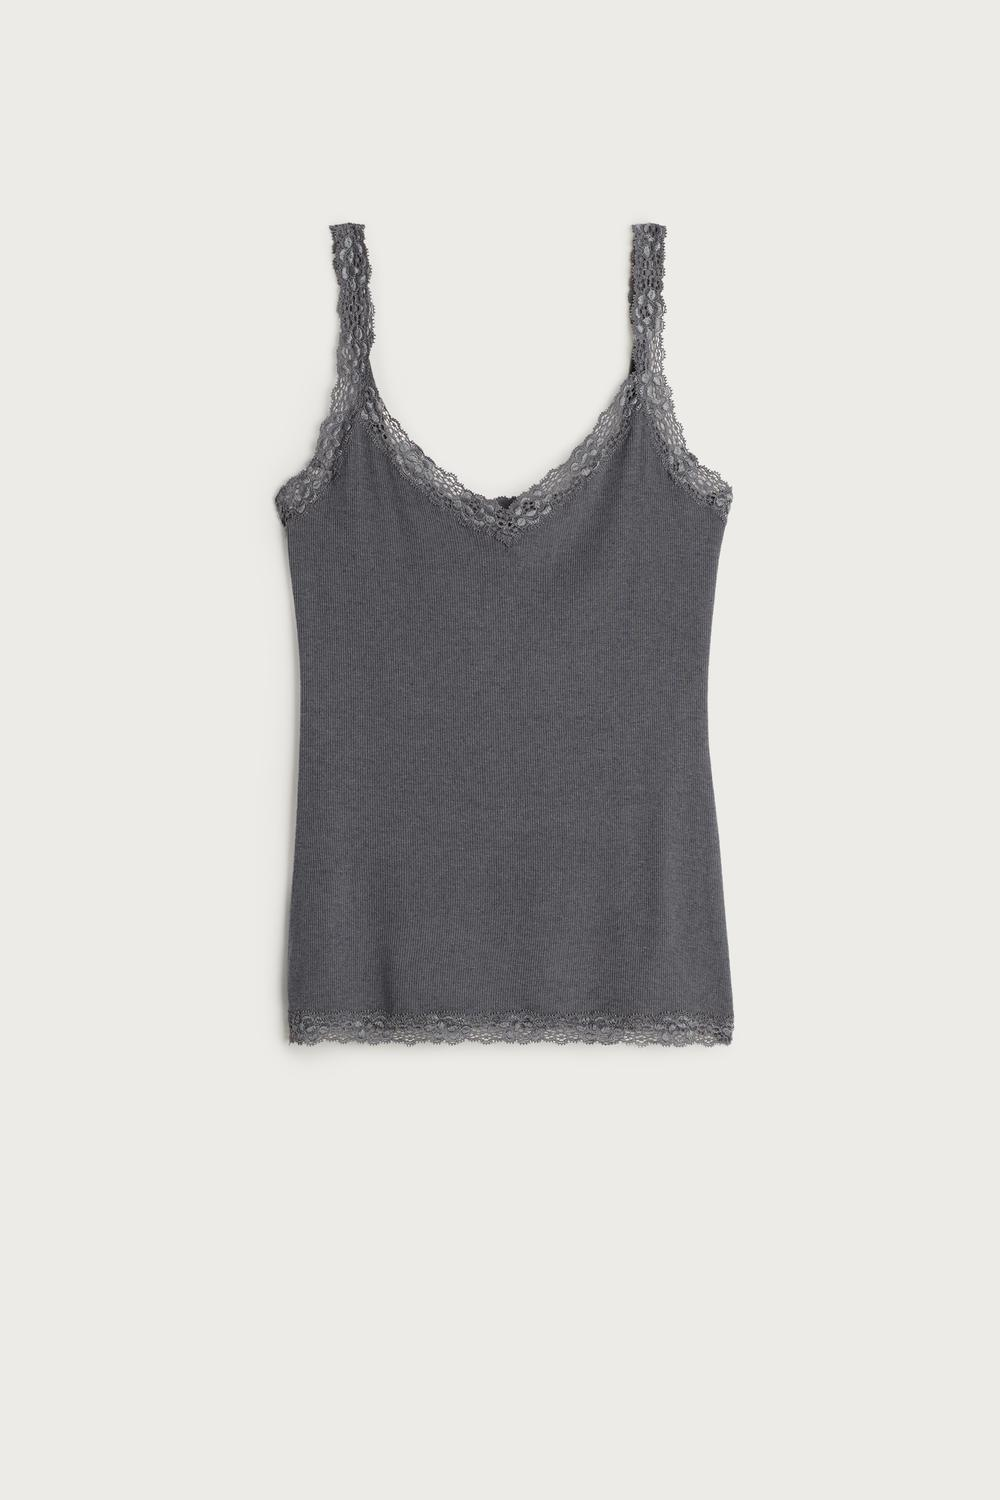 Top a Coste in Modal Cashmere Ultralight